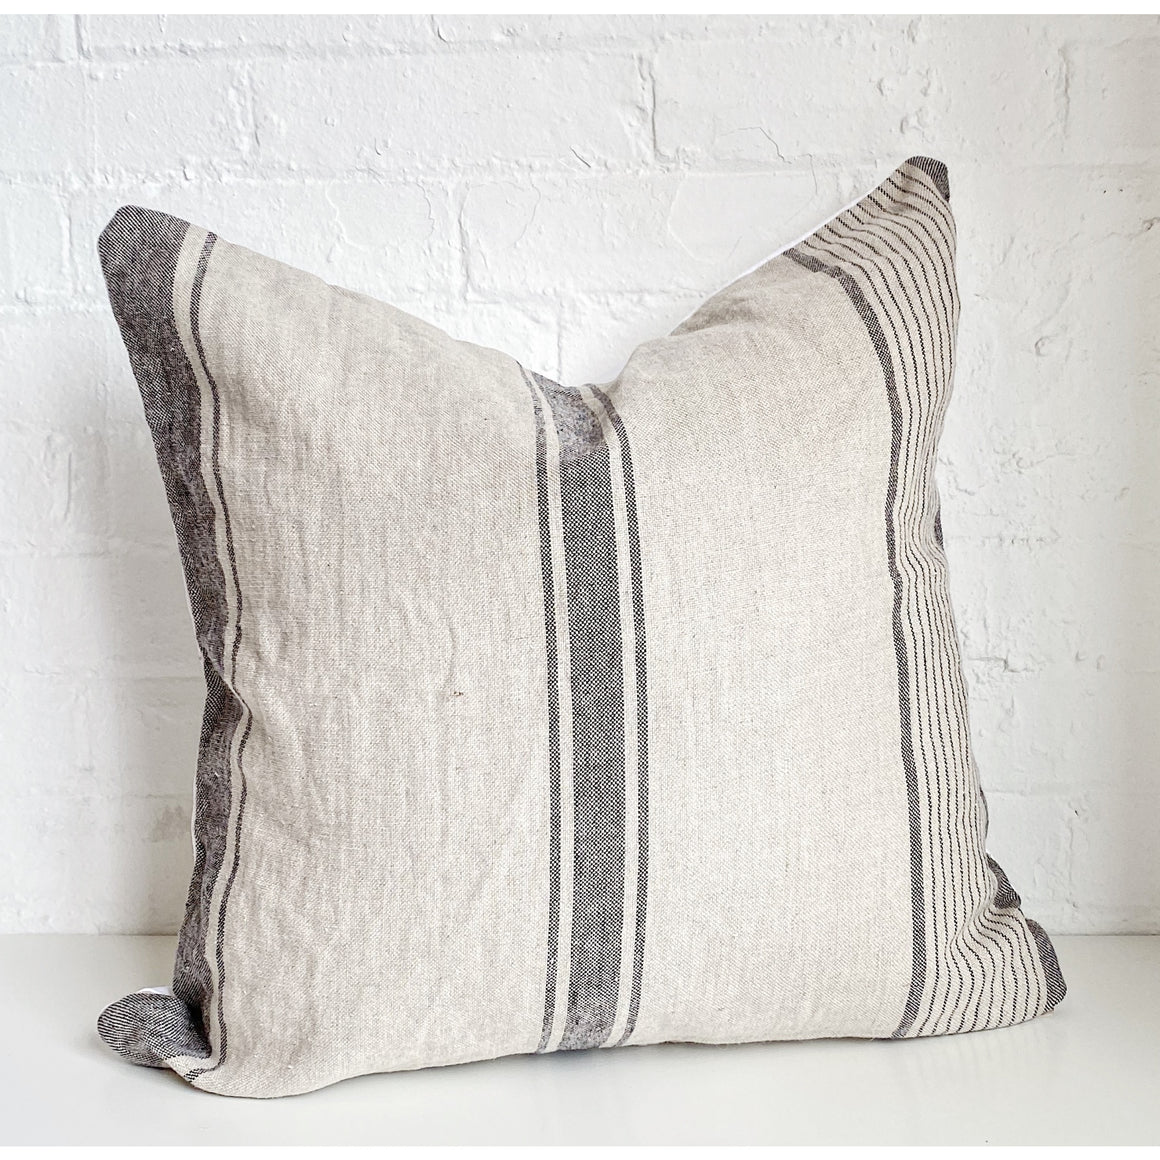 Grey on Beige Stripped Throw Pillow Case - Exclusive by AMD